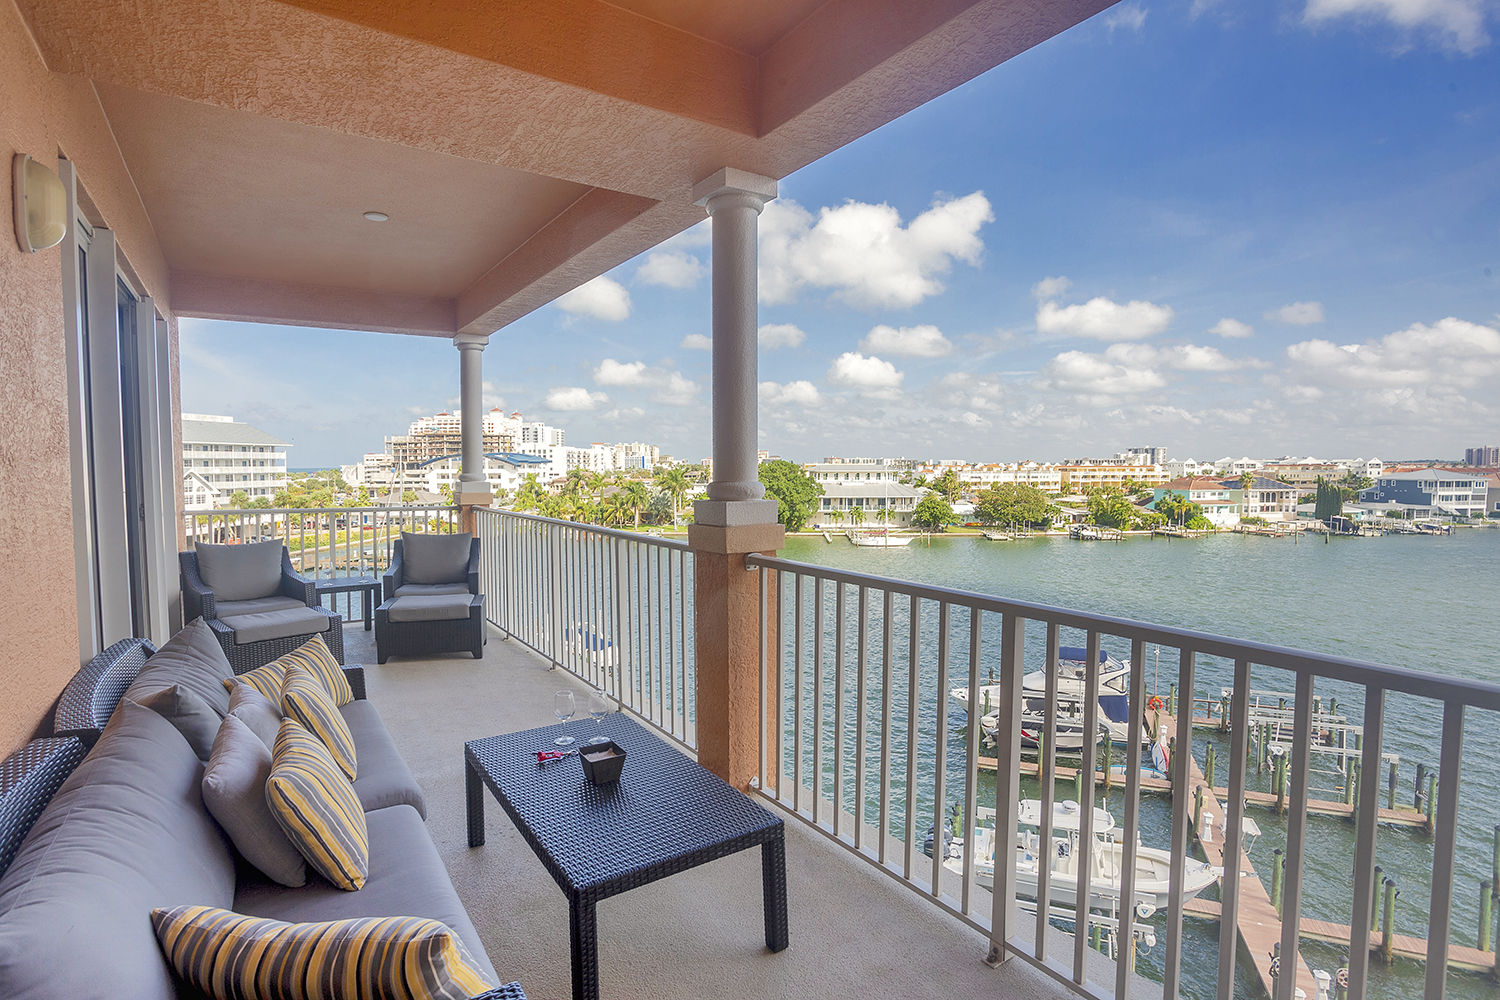 300 Sq Ft Balcony With Harbor Views